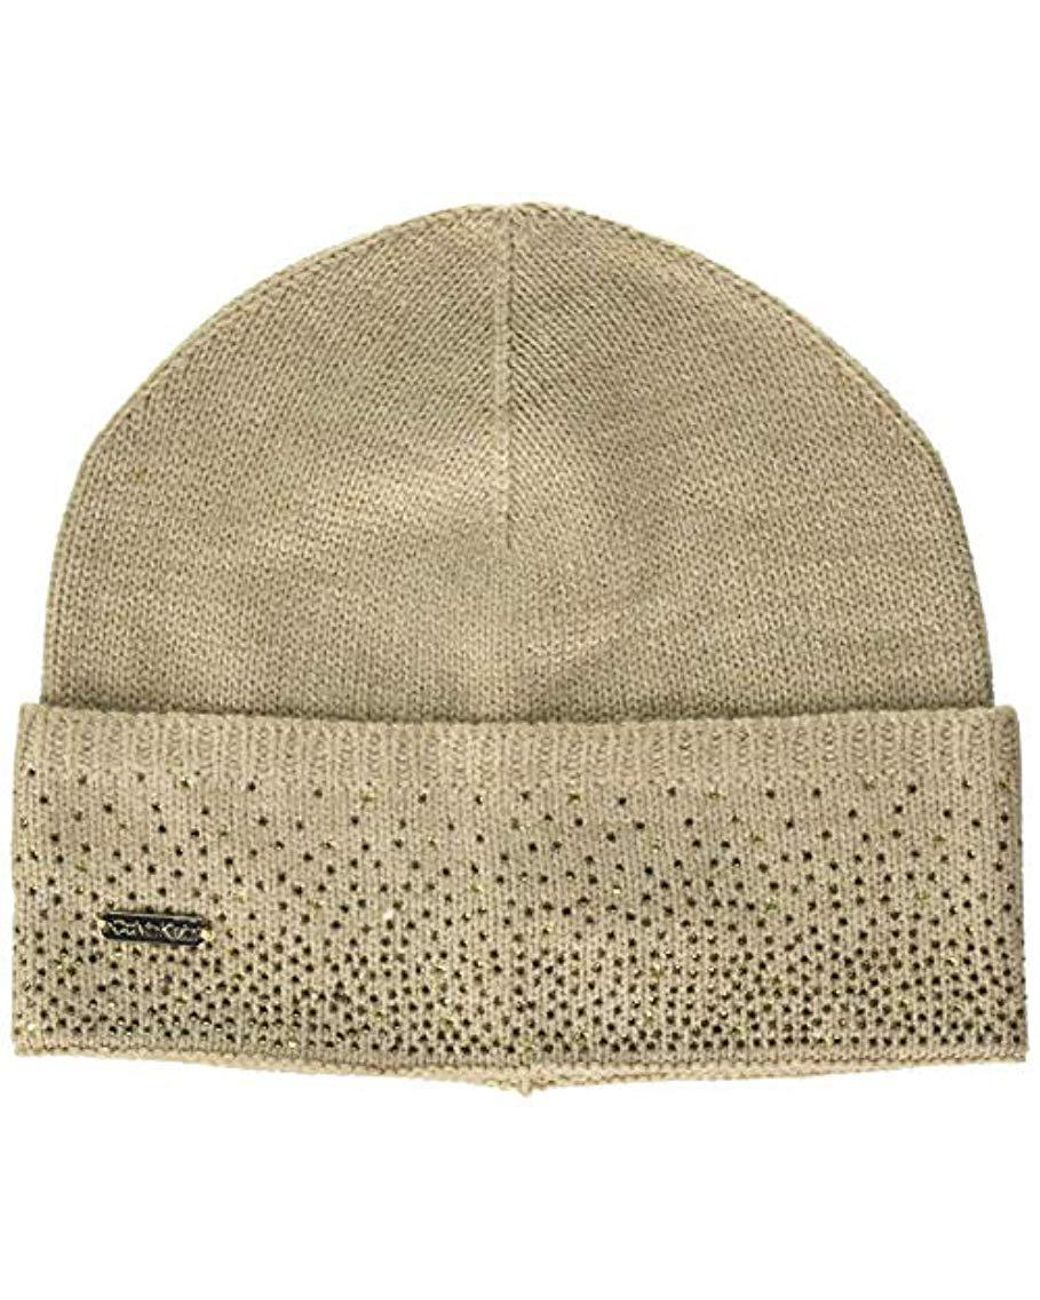 fd3a1823bd951 Women's Natural Ombre Crystal Cuffed Beanie